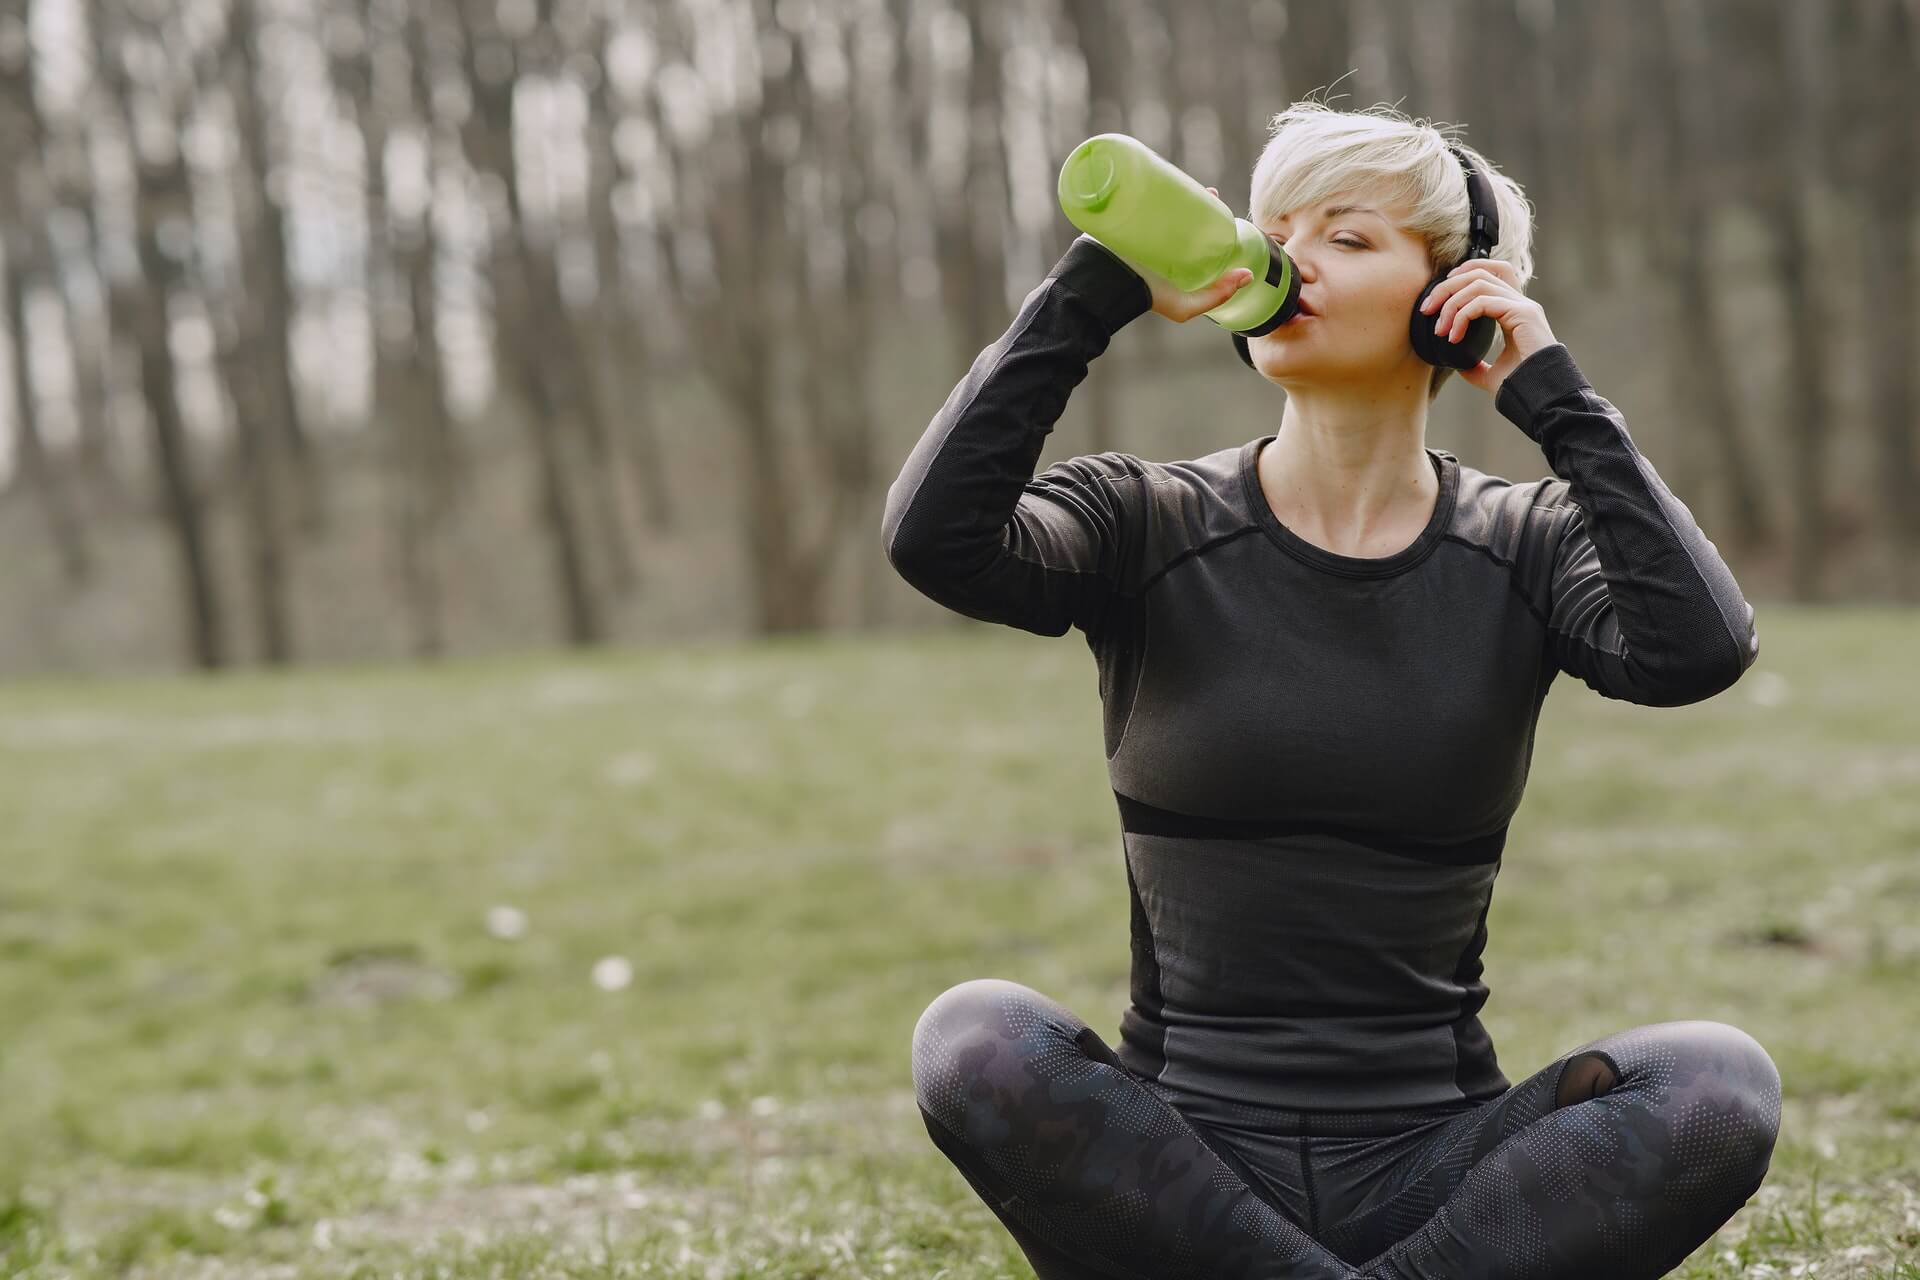 woman with short hair sitting in lotus position wearing headphones drinking from green bottle